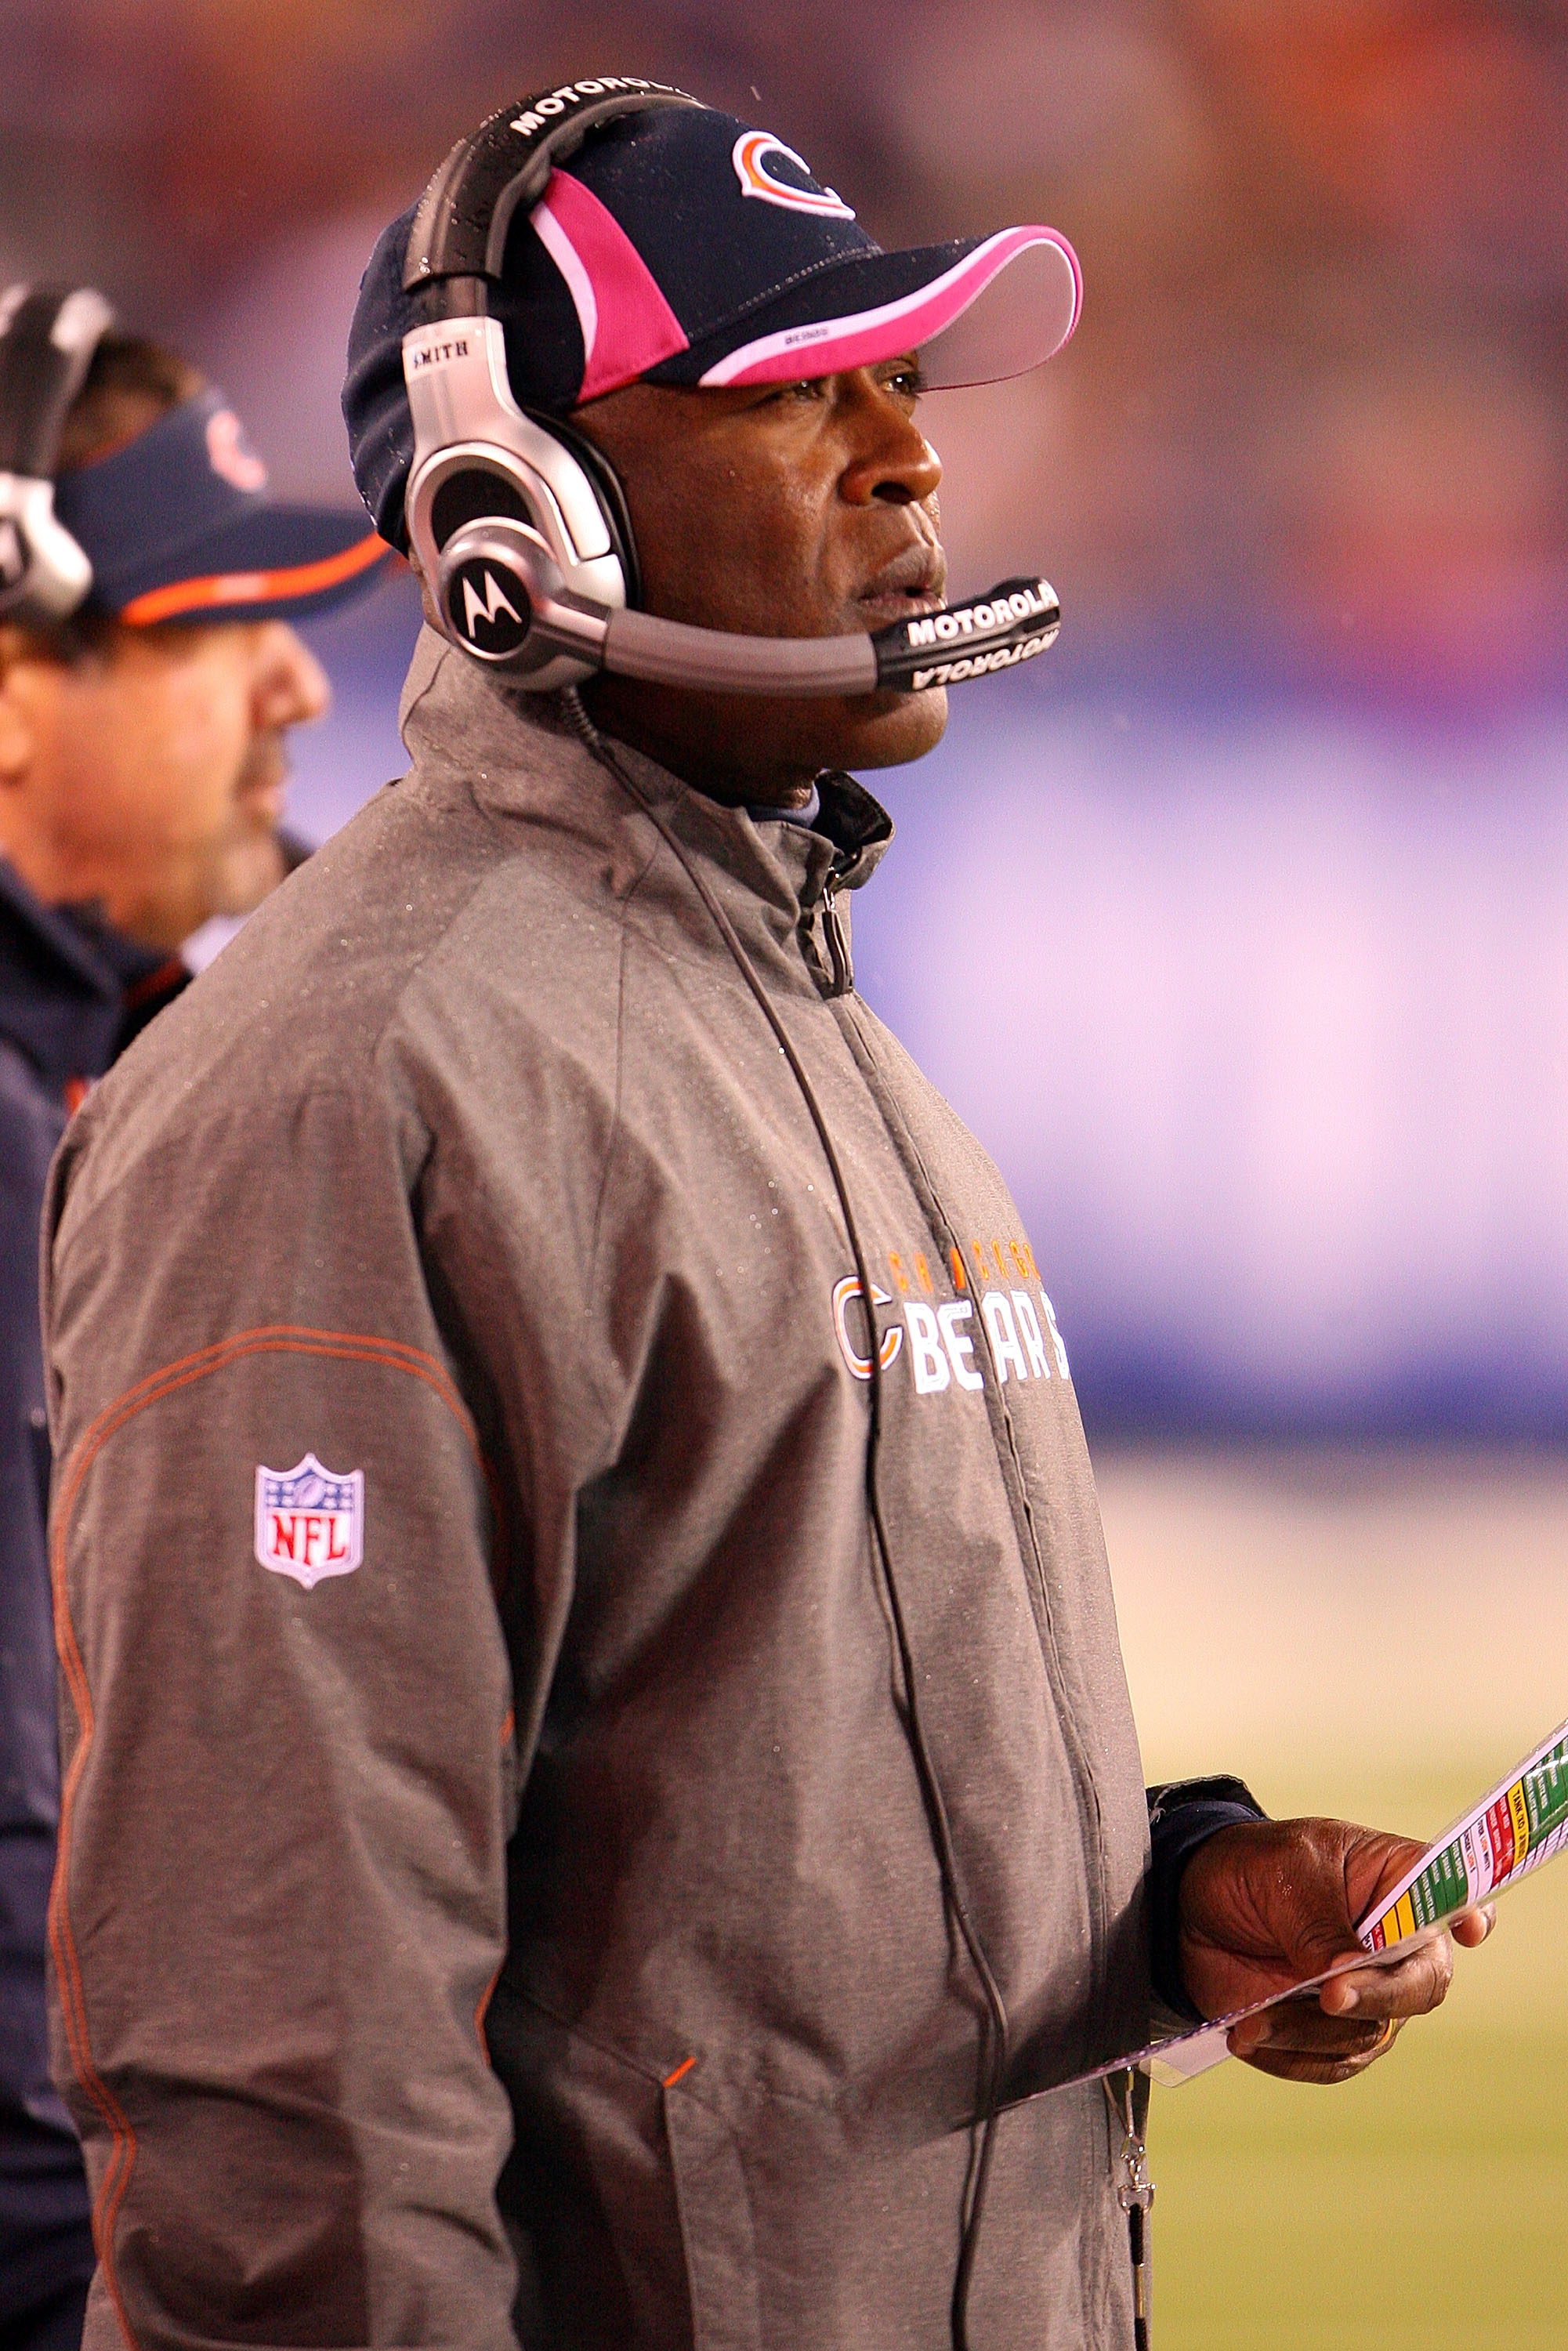 EAST RUTHERFORD, NJ - OCTOBER 03:  Head coach Lovie Smith of the Chicago Bears looks on from the sidelines against the New York Giants at New Meadowlands Stadium on October 3, 2010 in East Rutherford, New Jersey.  (Photo by Andrew Burton/Getty Images)